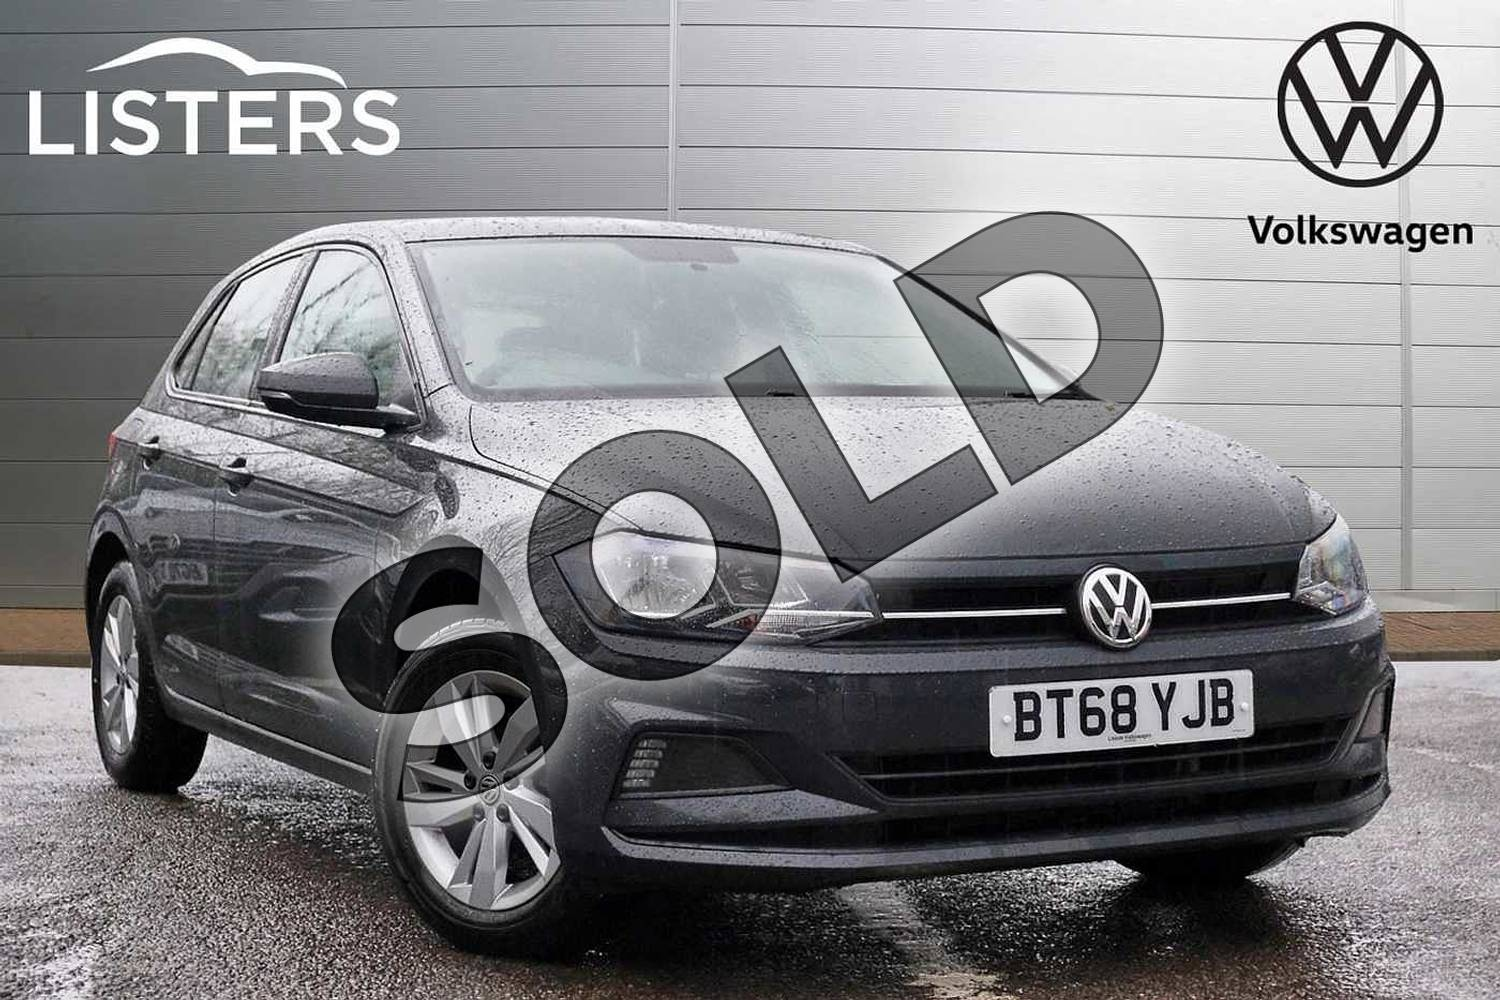 2018 Volkswagen Polo Hatchback 1.0 TSI 95 SE 5dr in Urano Grey at Listers Volkswagen Leamington Spa